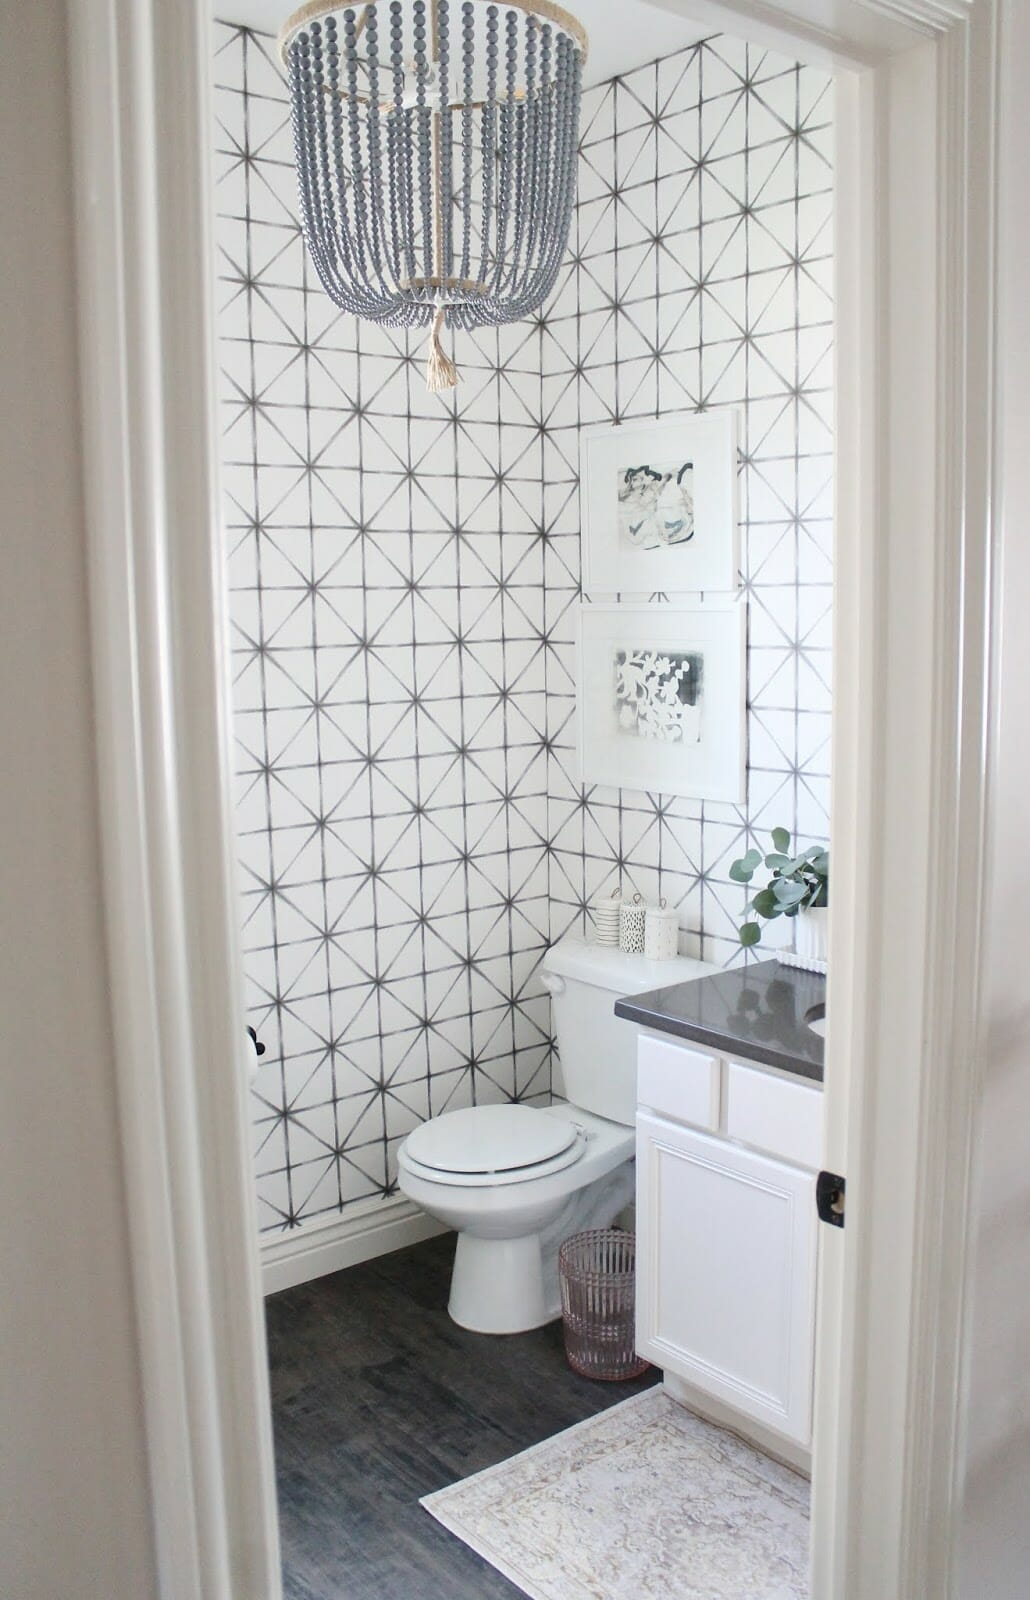 Revisiting the Powder Room